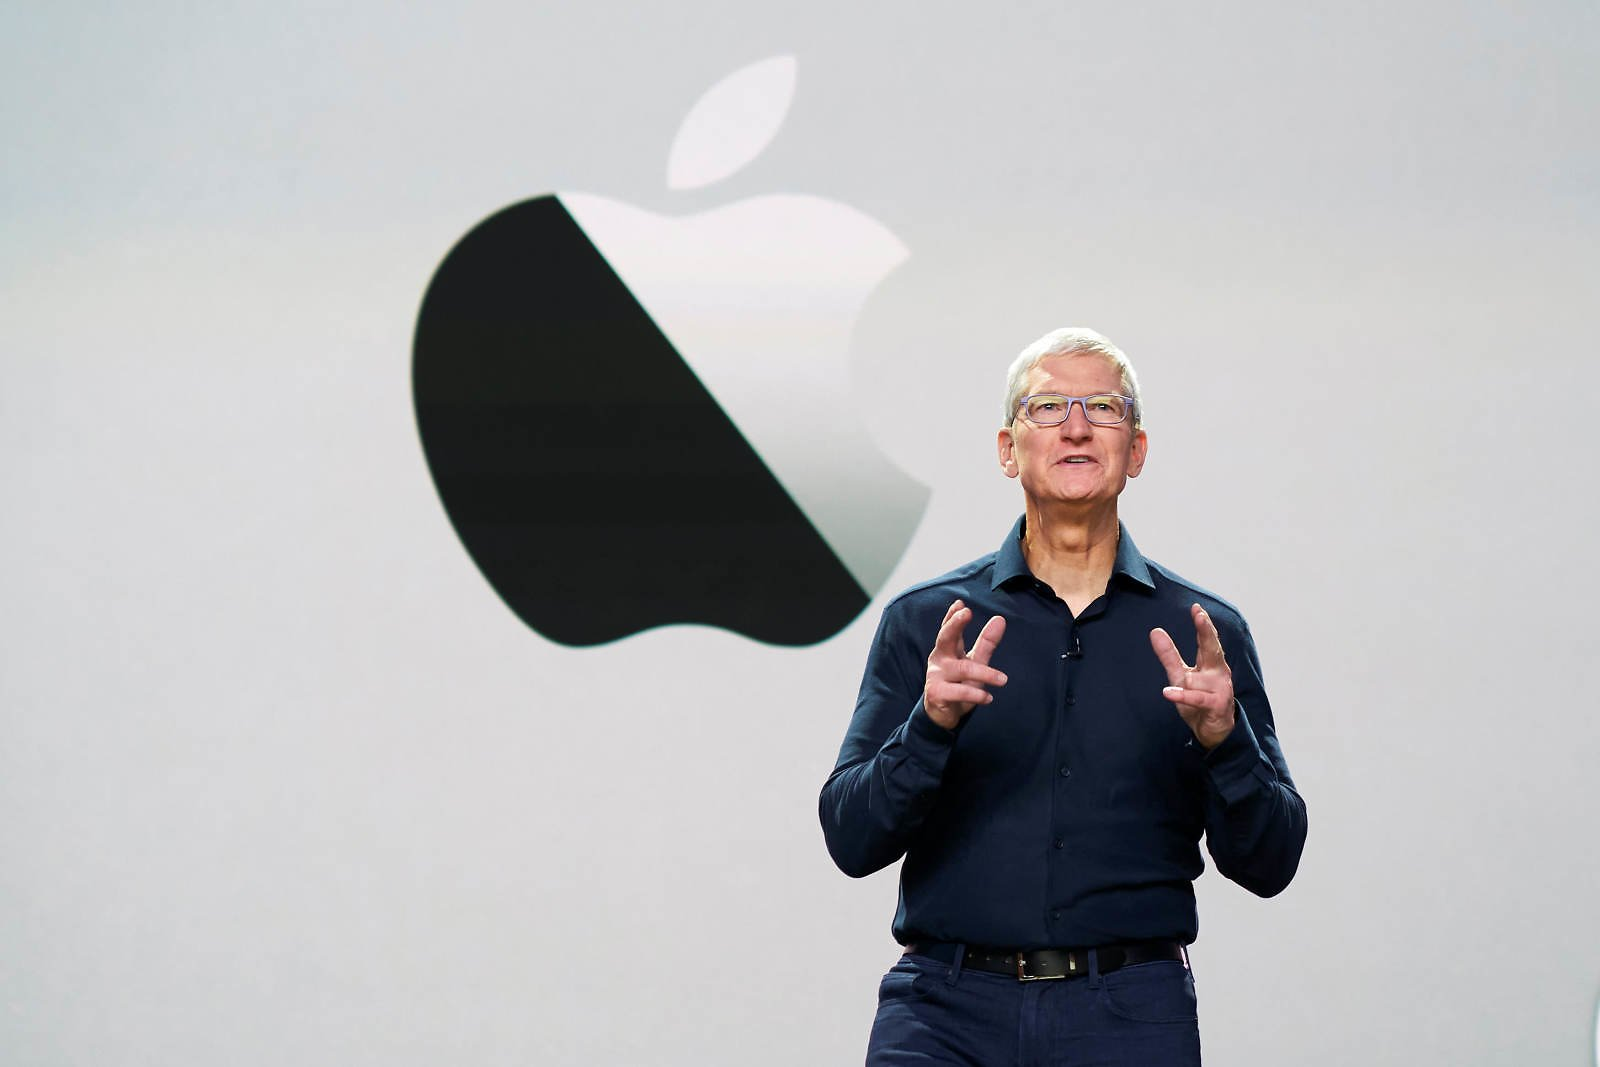 Apple Will Let You Use Your IPhone to Find Other Lost Products